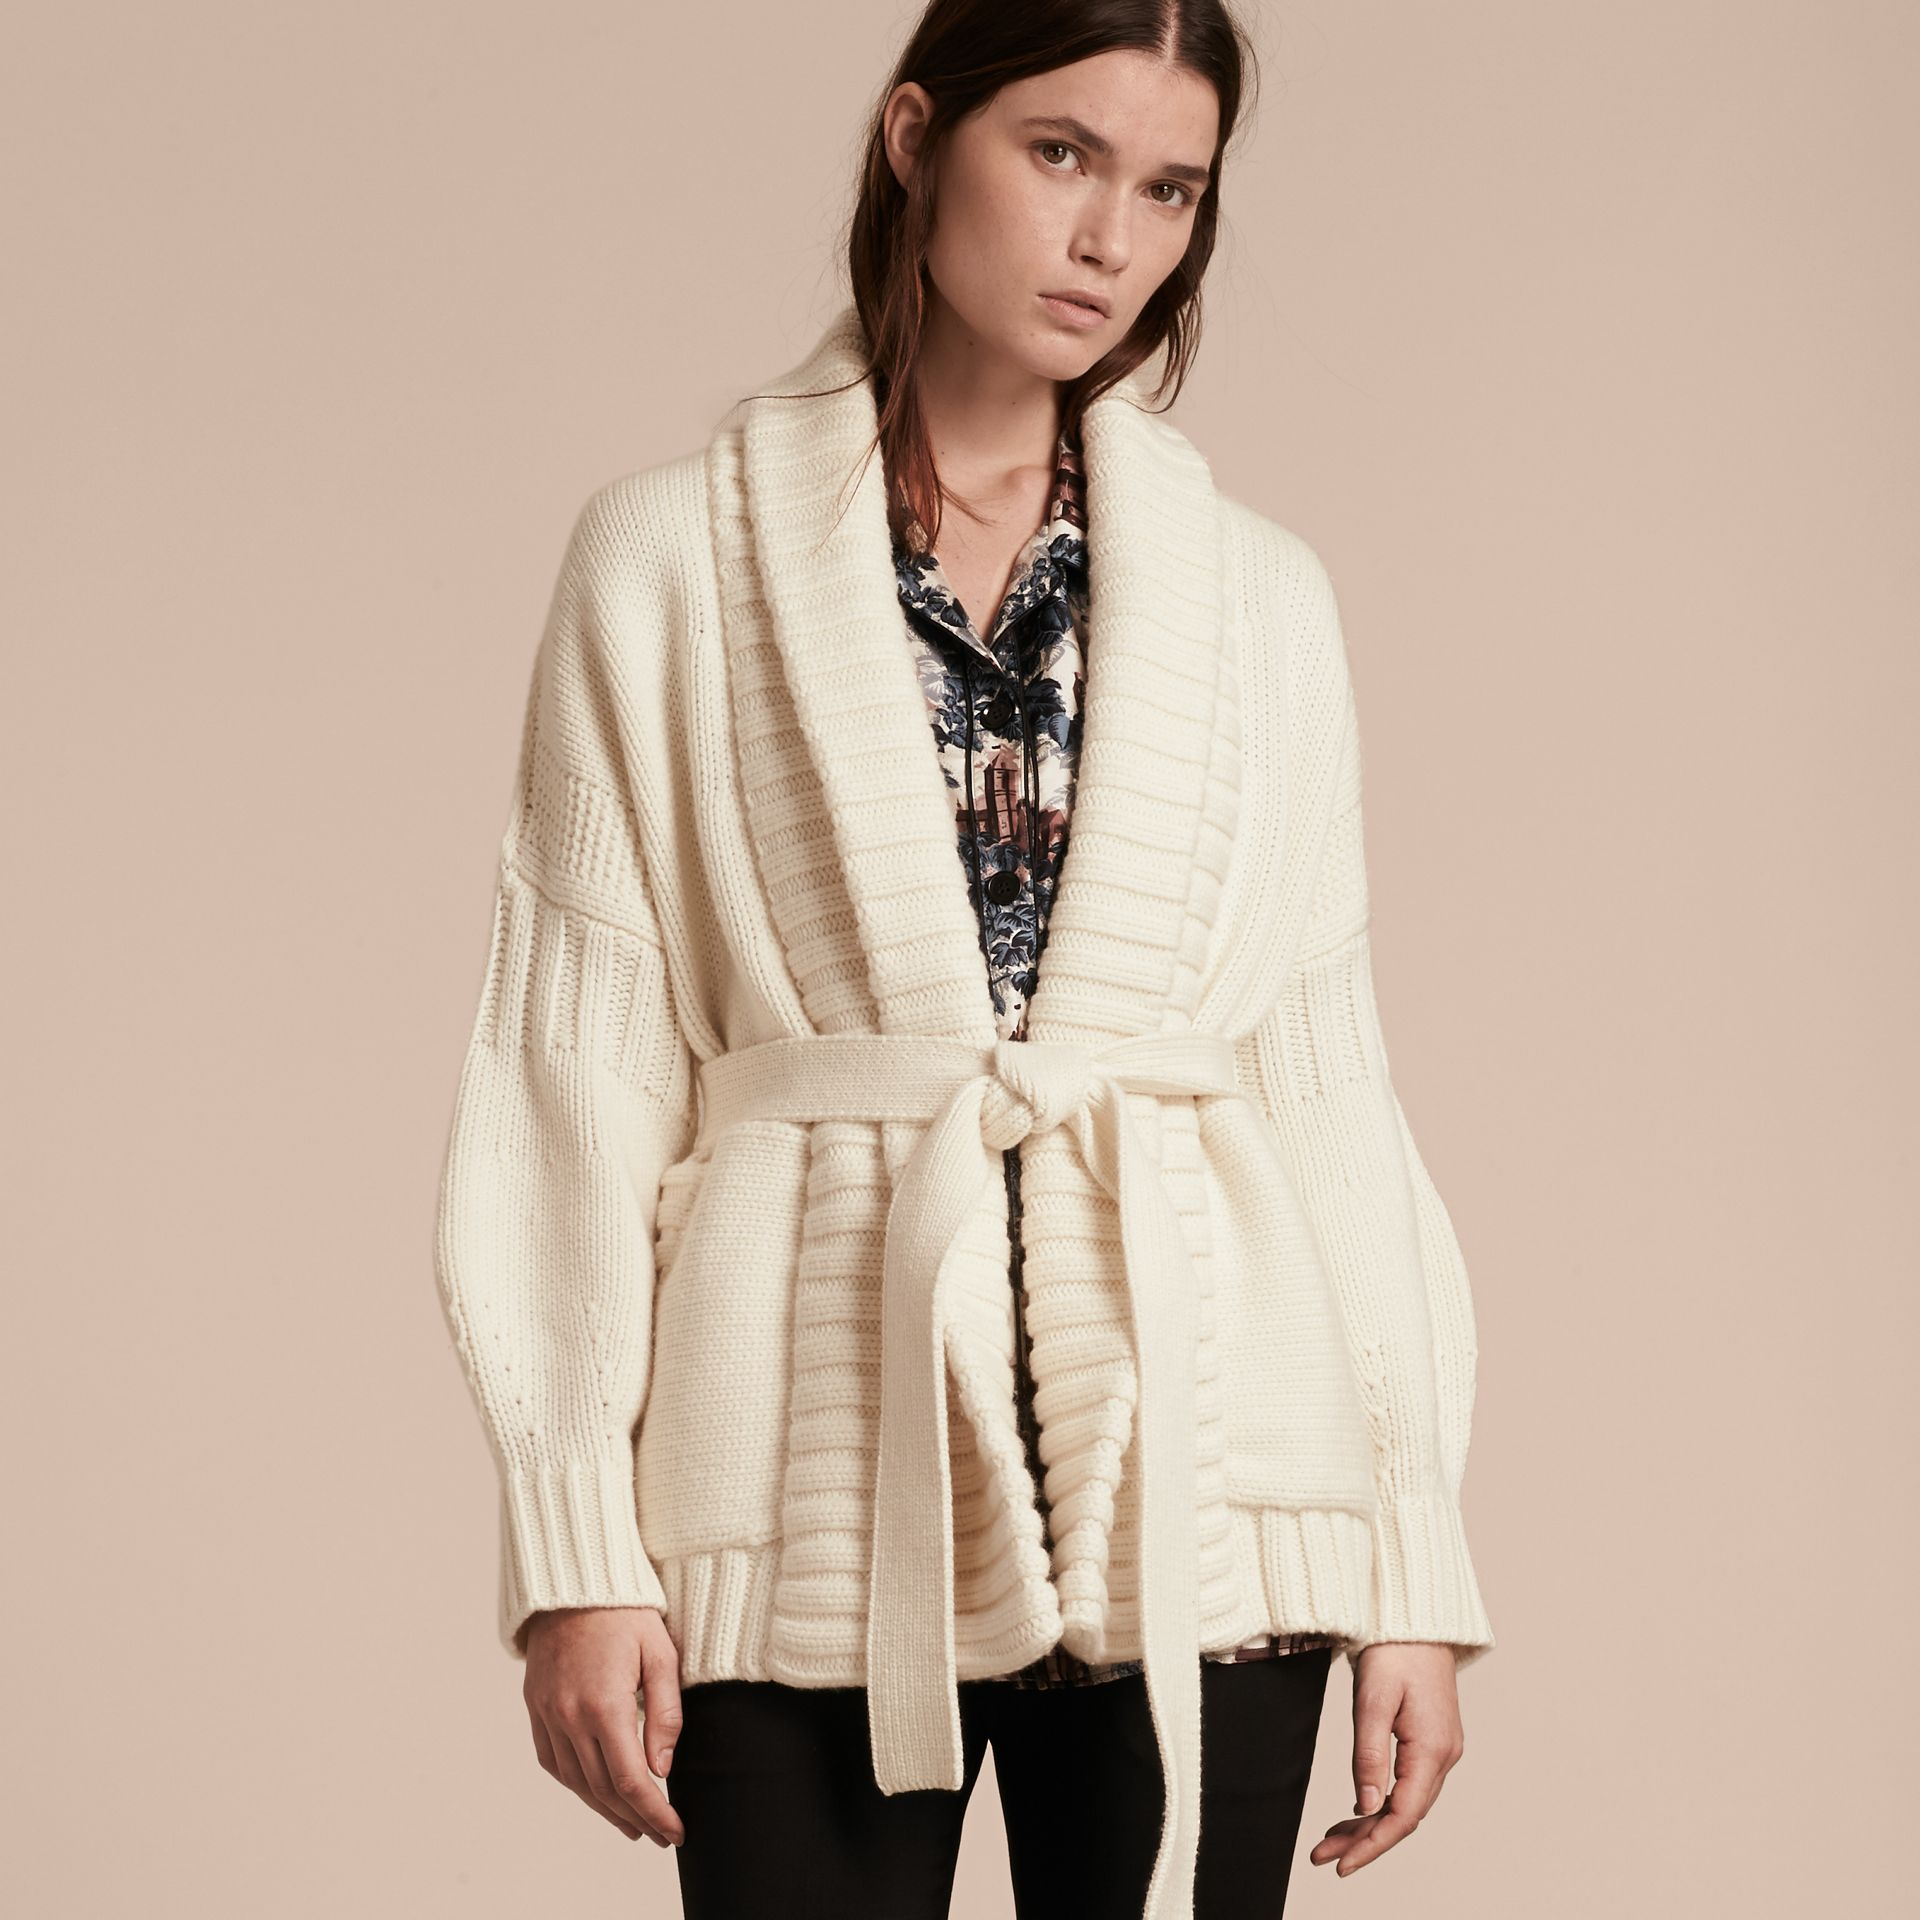 Knitted Wool Cashmere Belted Cardigan Jacket Natural White - gallery image 7